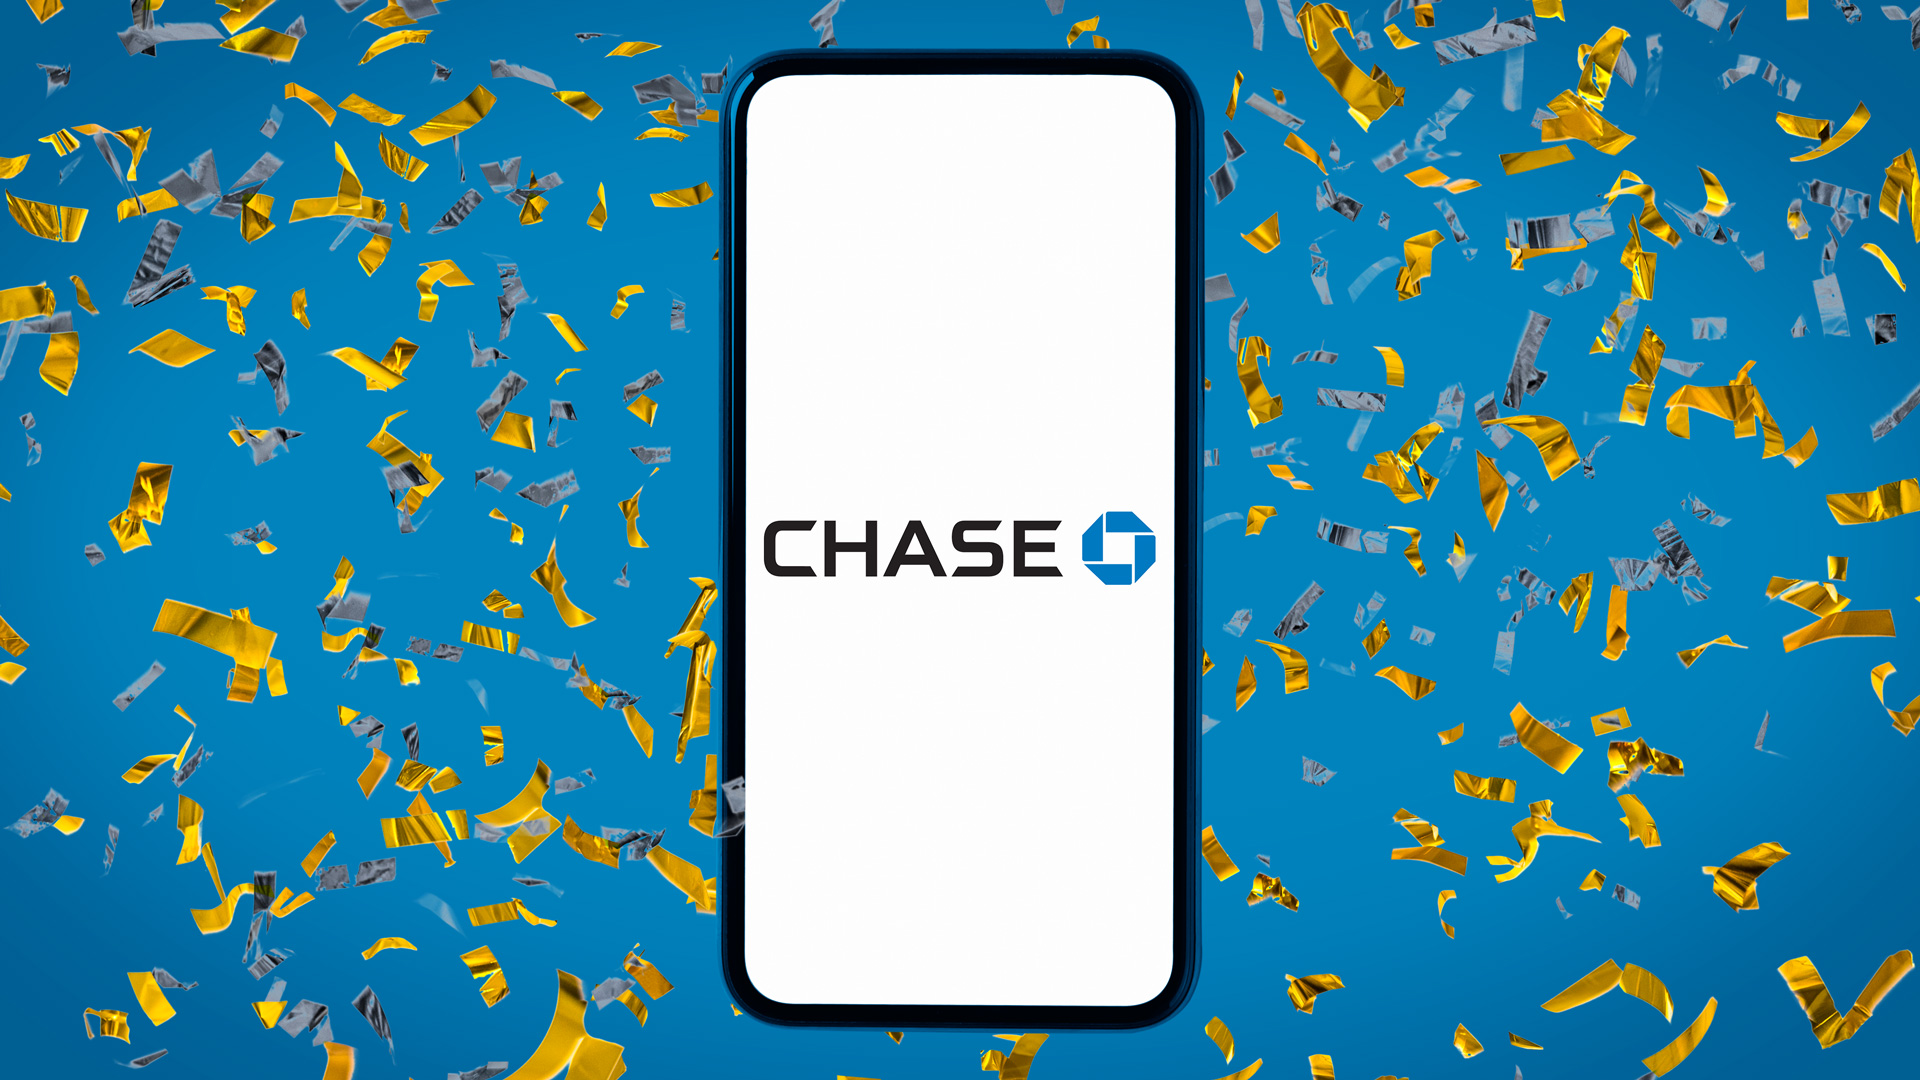 Chase bank promotion